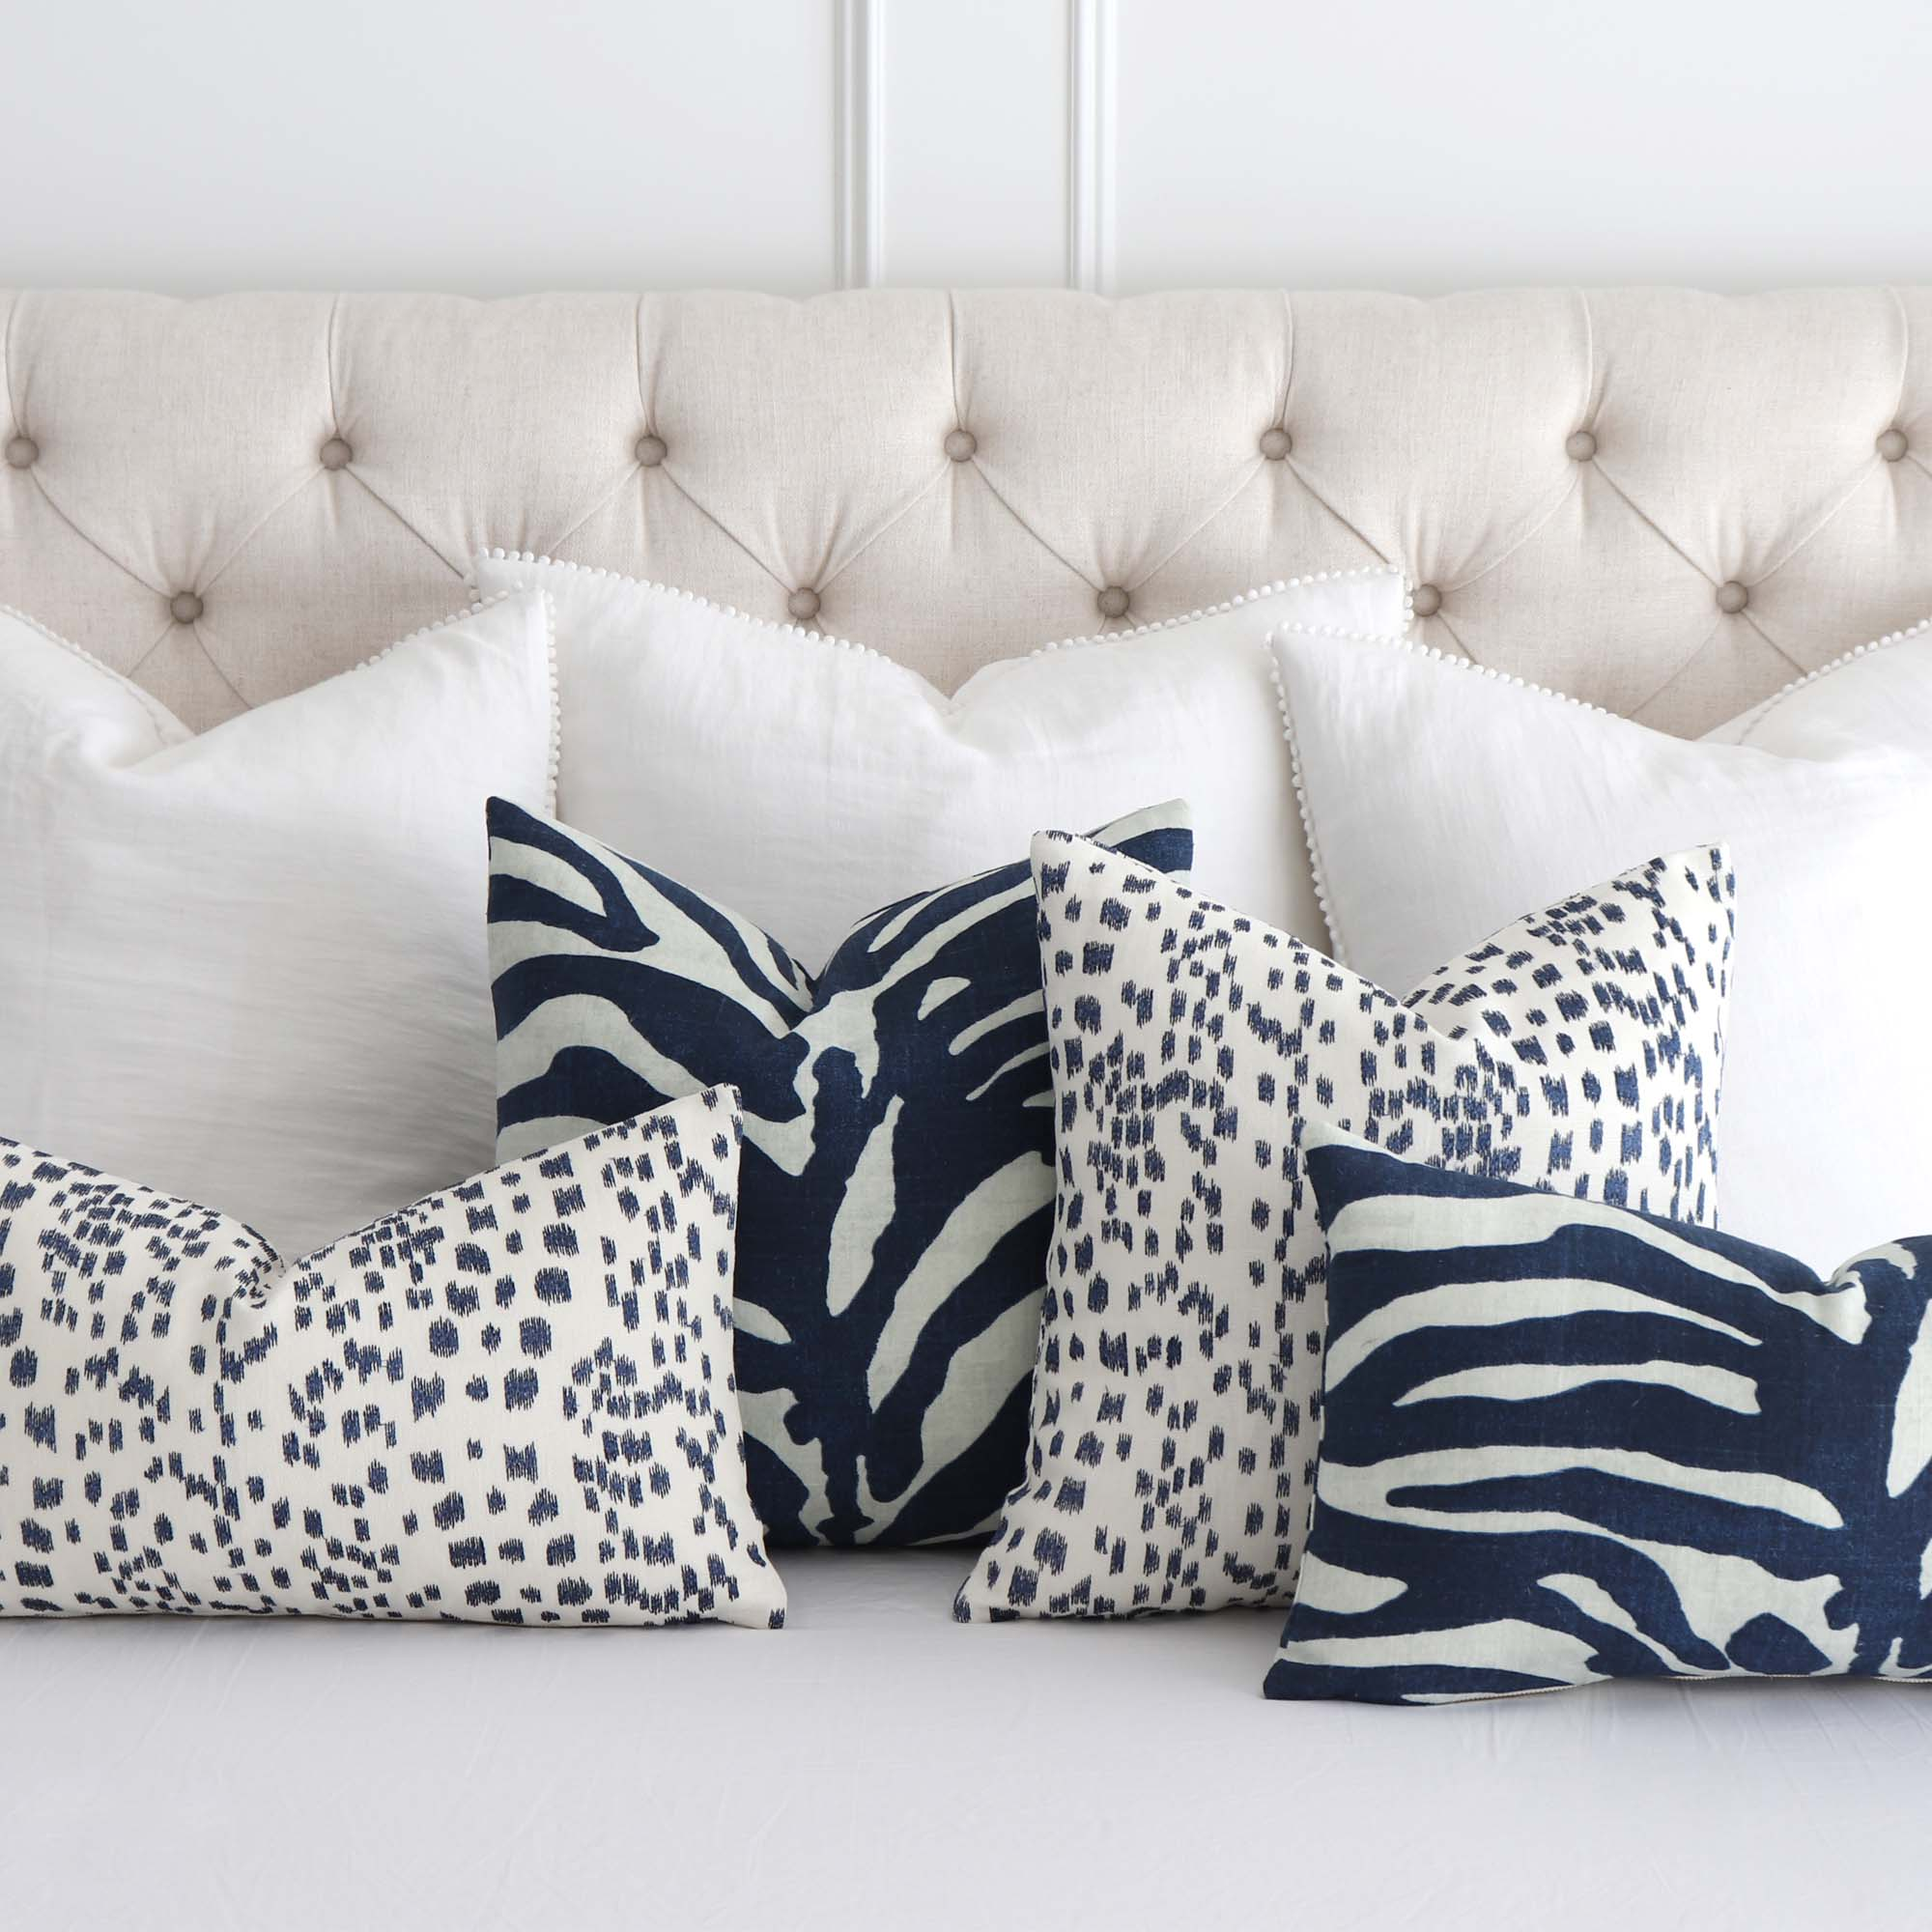 Chloe And Olive Pillow Shop Custom Made Designer Pillow Covers